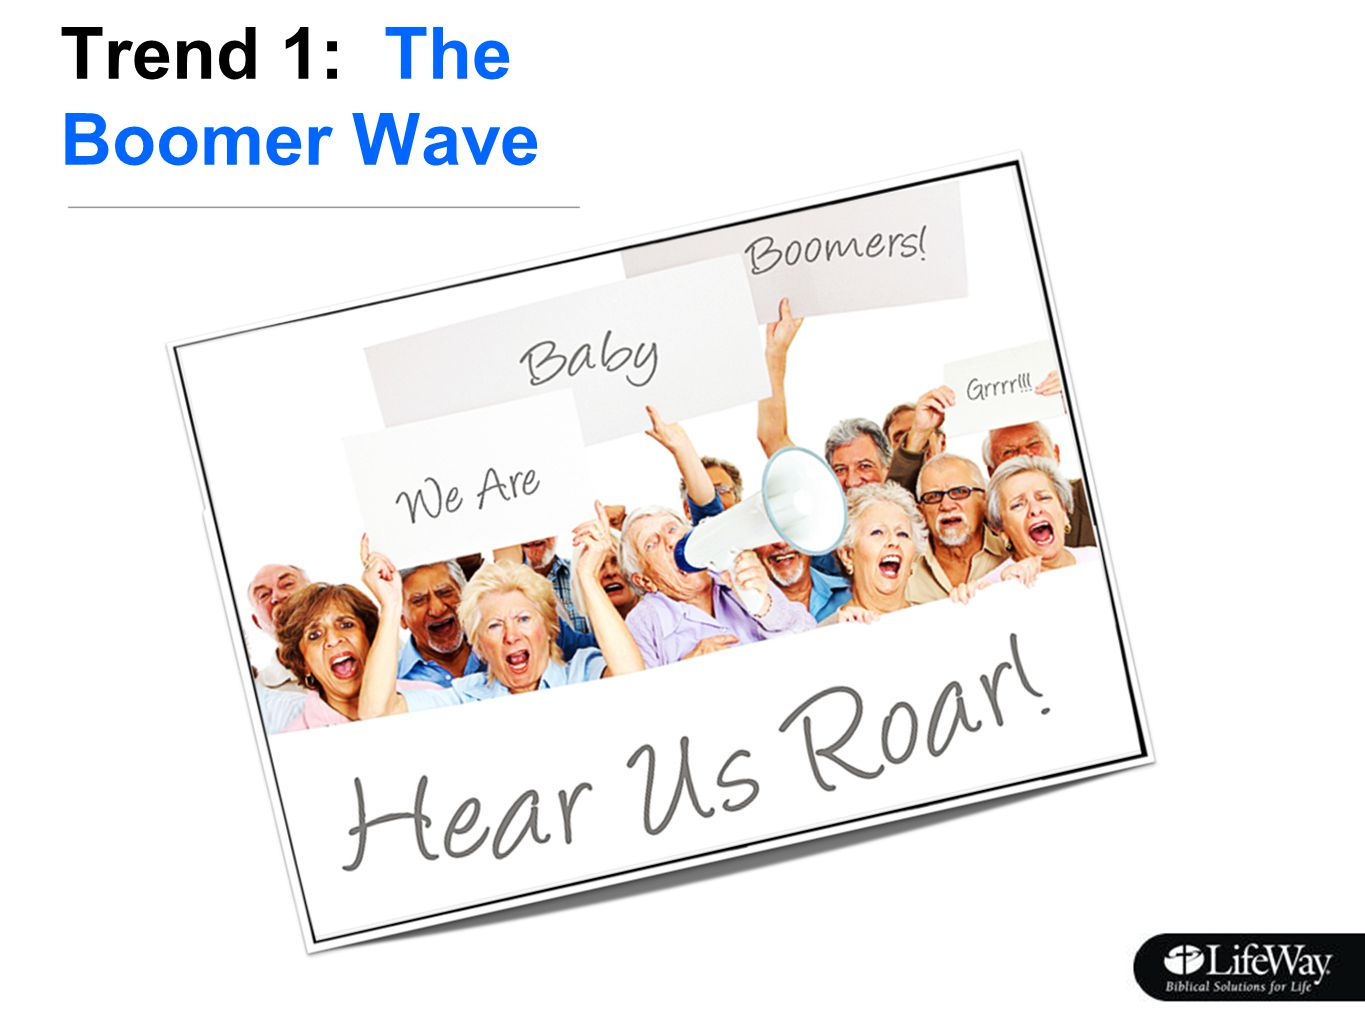 Trend 1: The Boomer Wave